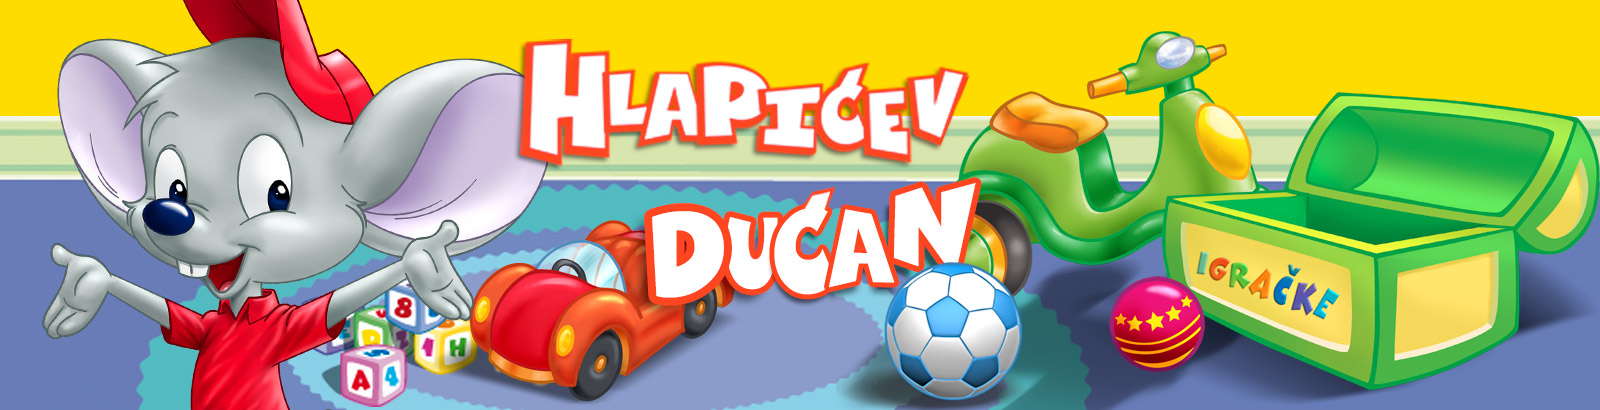 header-hlapic-ducan-1600